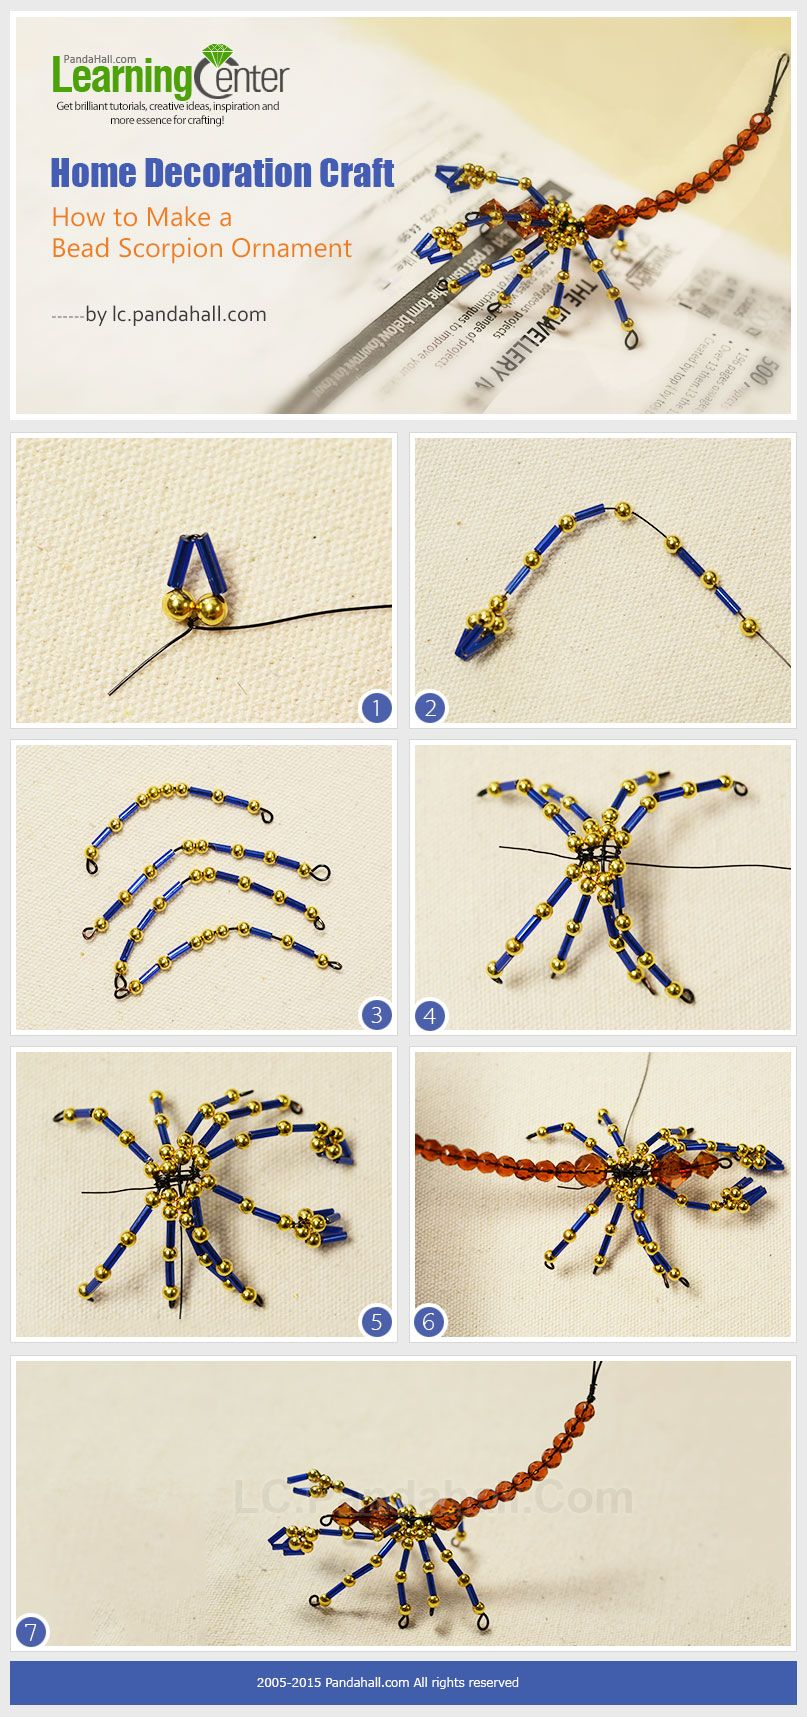 Home Decoration Craft - How to Make a Bead Scorpion Ornament ...